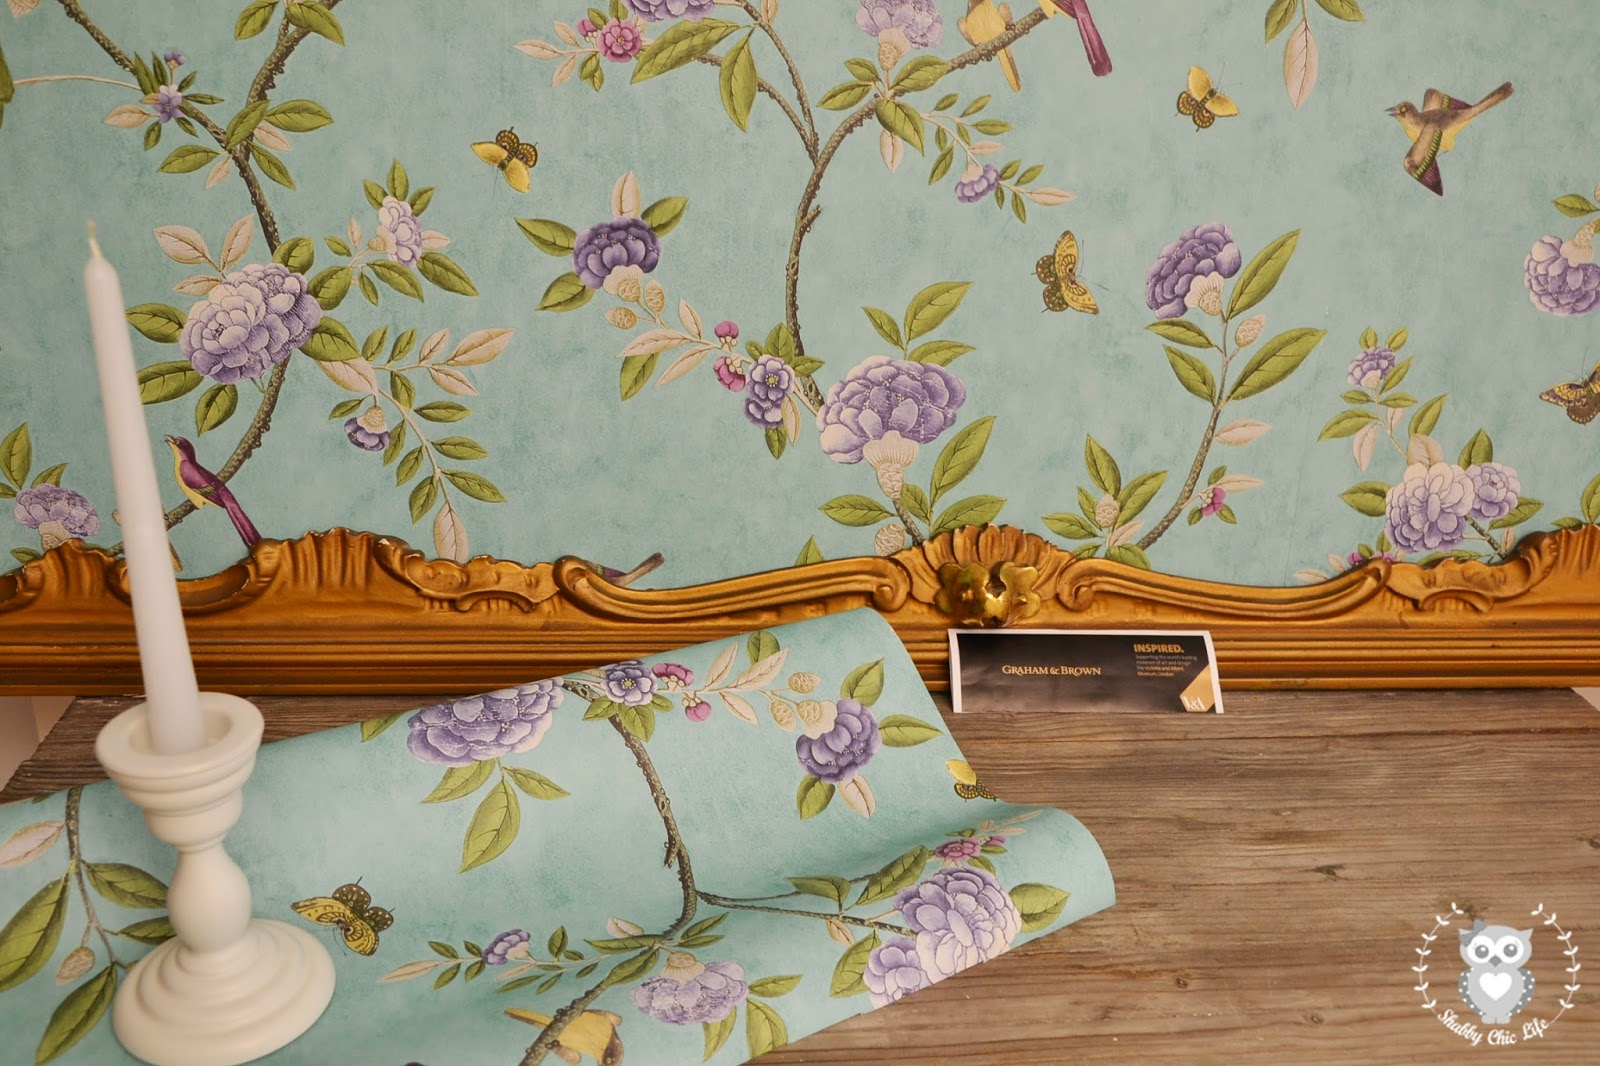 bohemian style house,graham & brown, wallpaper